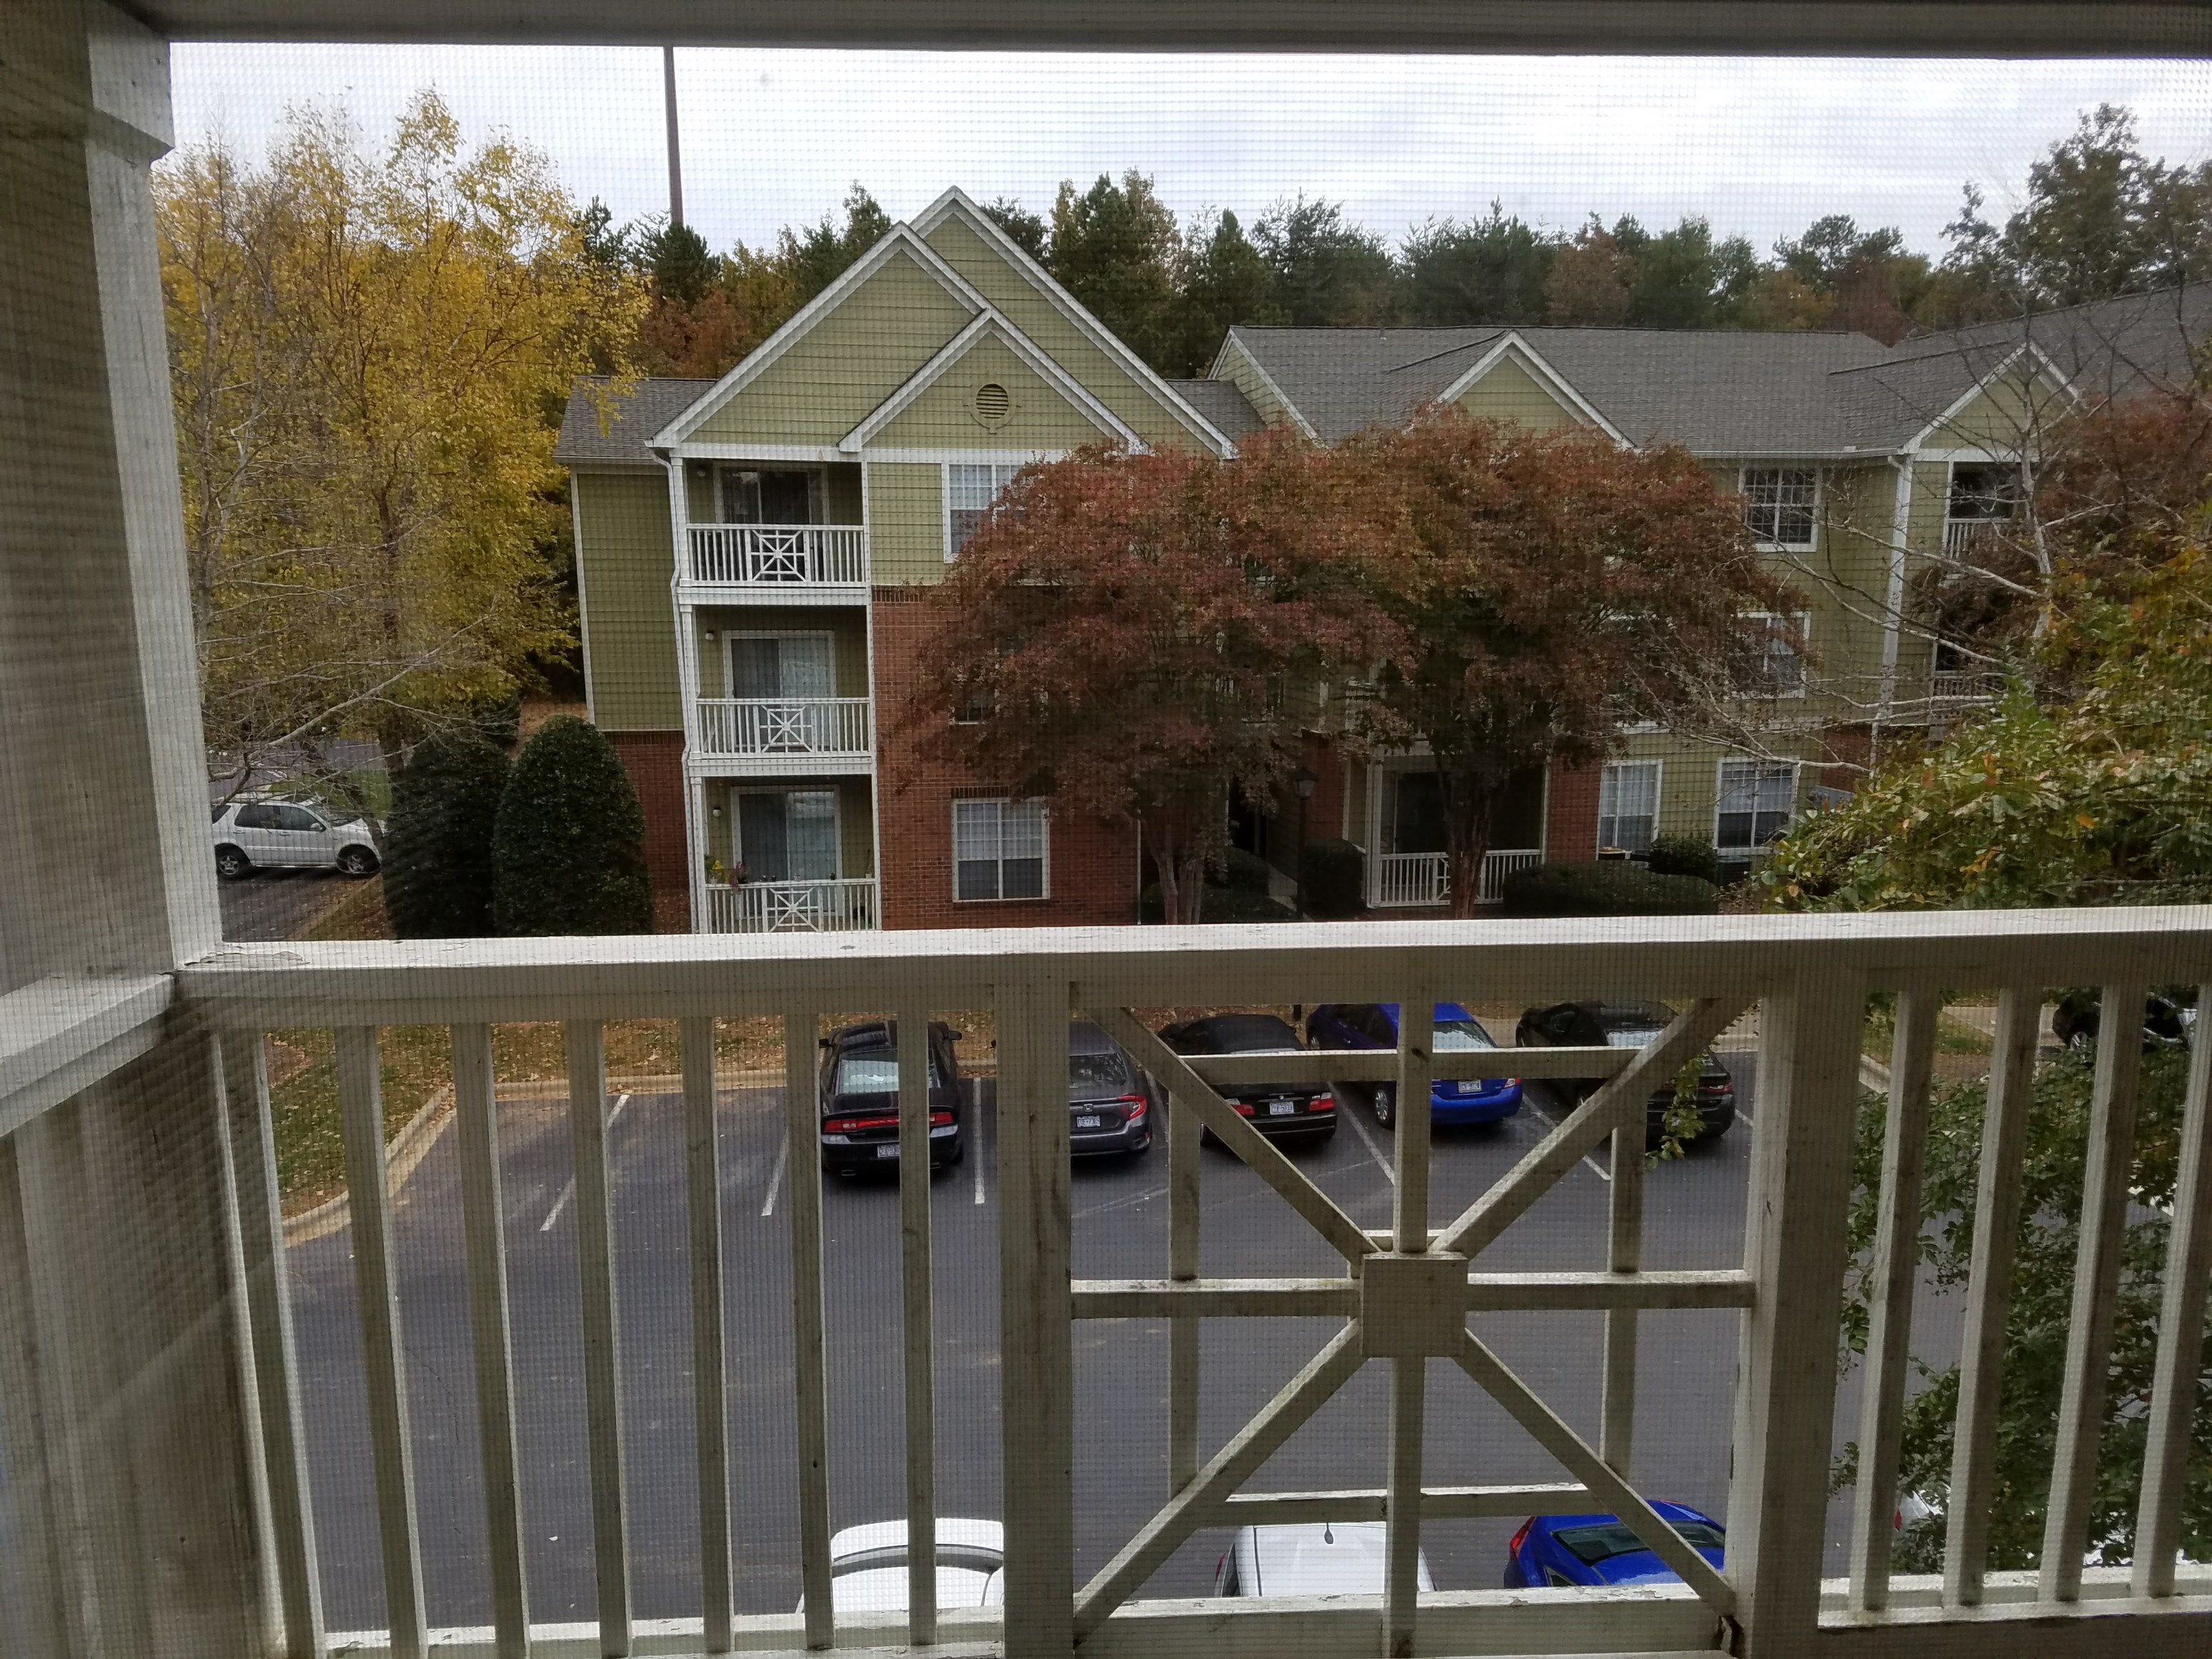 Triangle Rent A Car Greensboro Nc: Affordable 2BHK For Rent At Autumn Park Apartments In